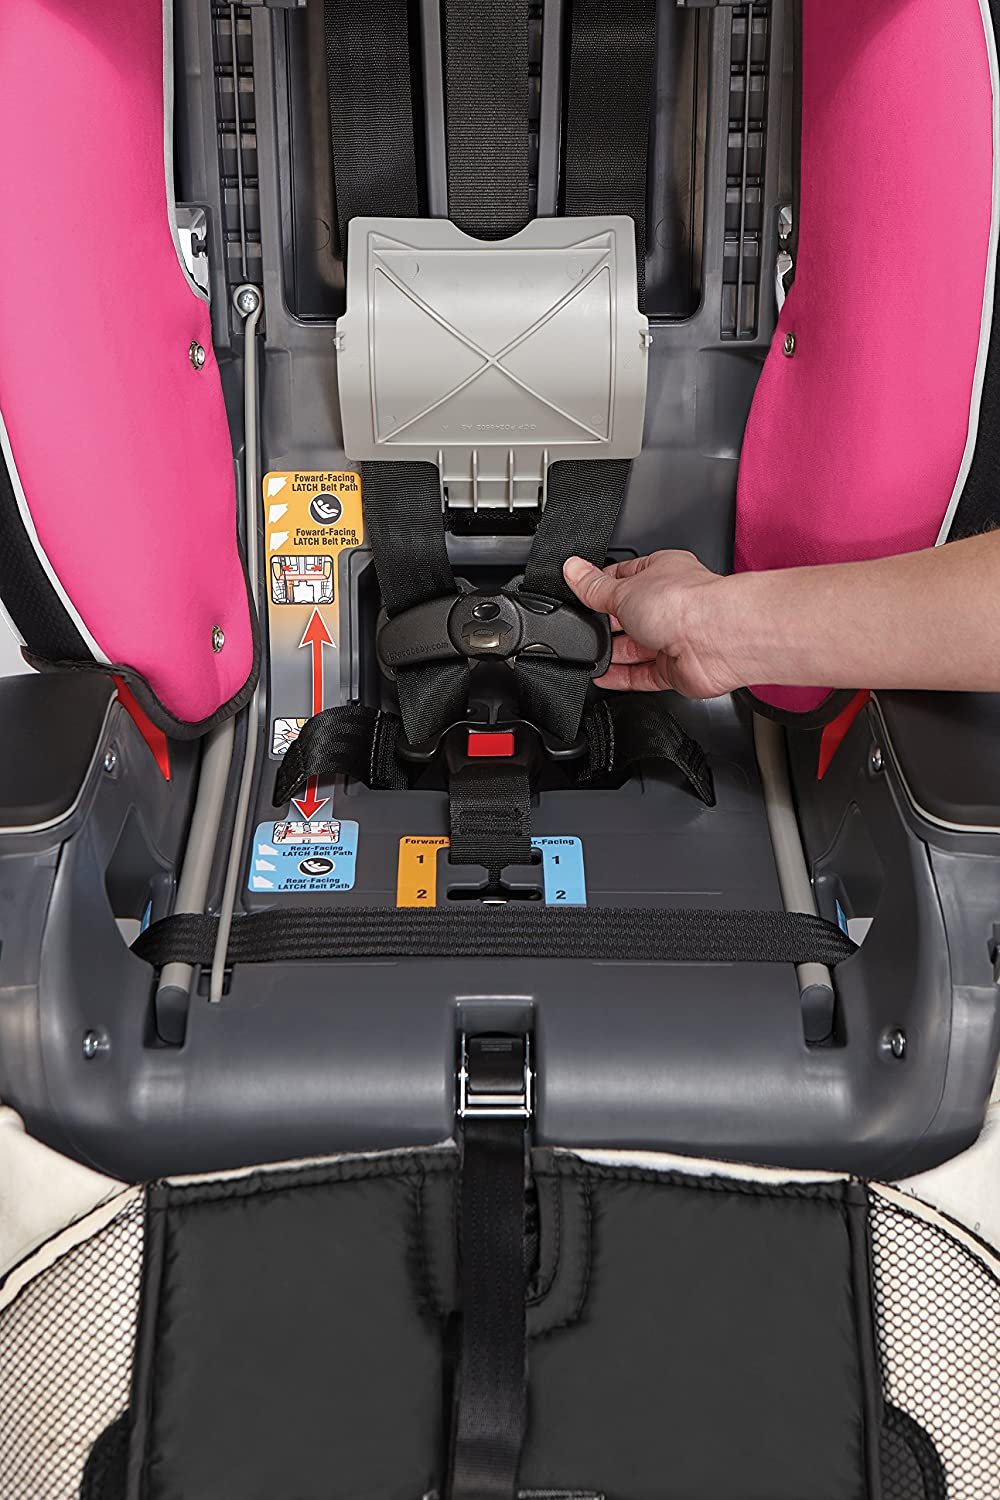 Parts for car seats likewise graco replacement parts for car - Parts For Car Seats Likewise Graco Replacement Parts For Car 50